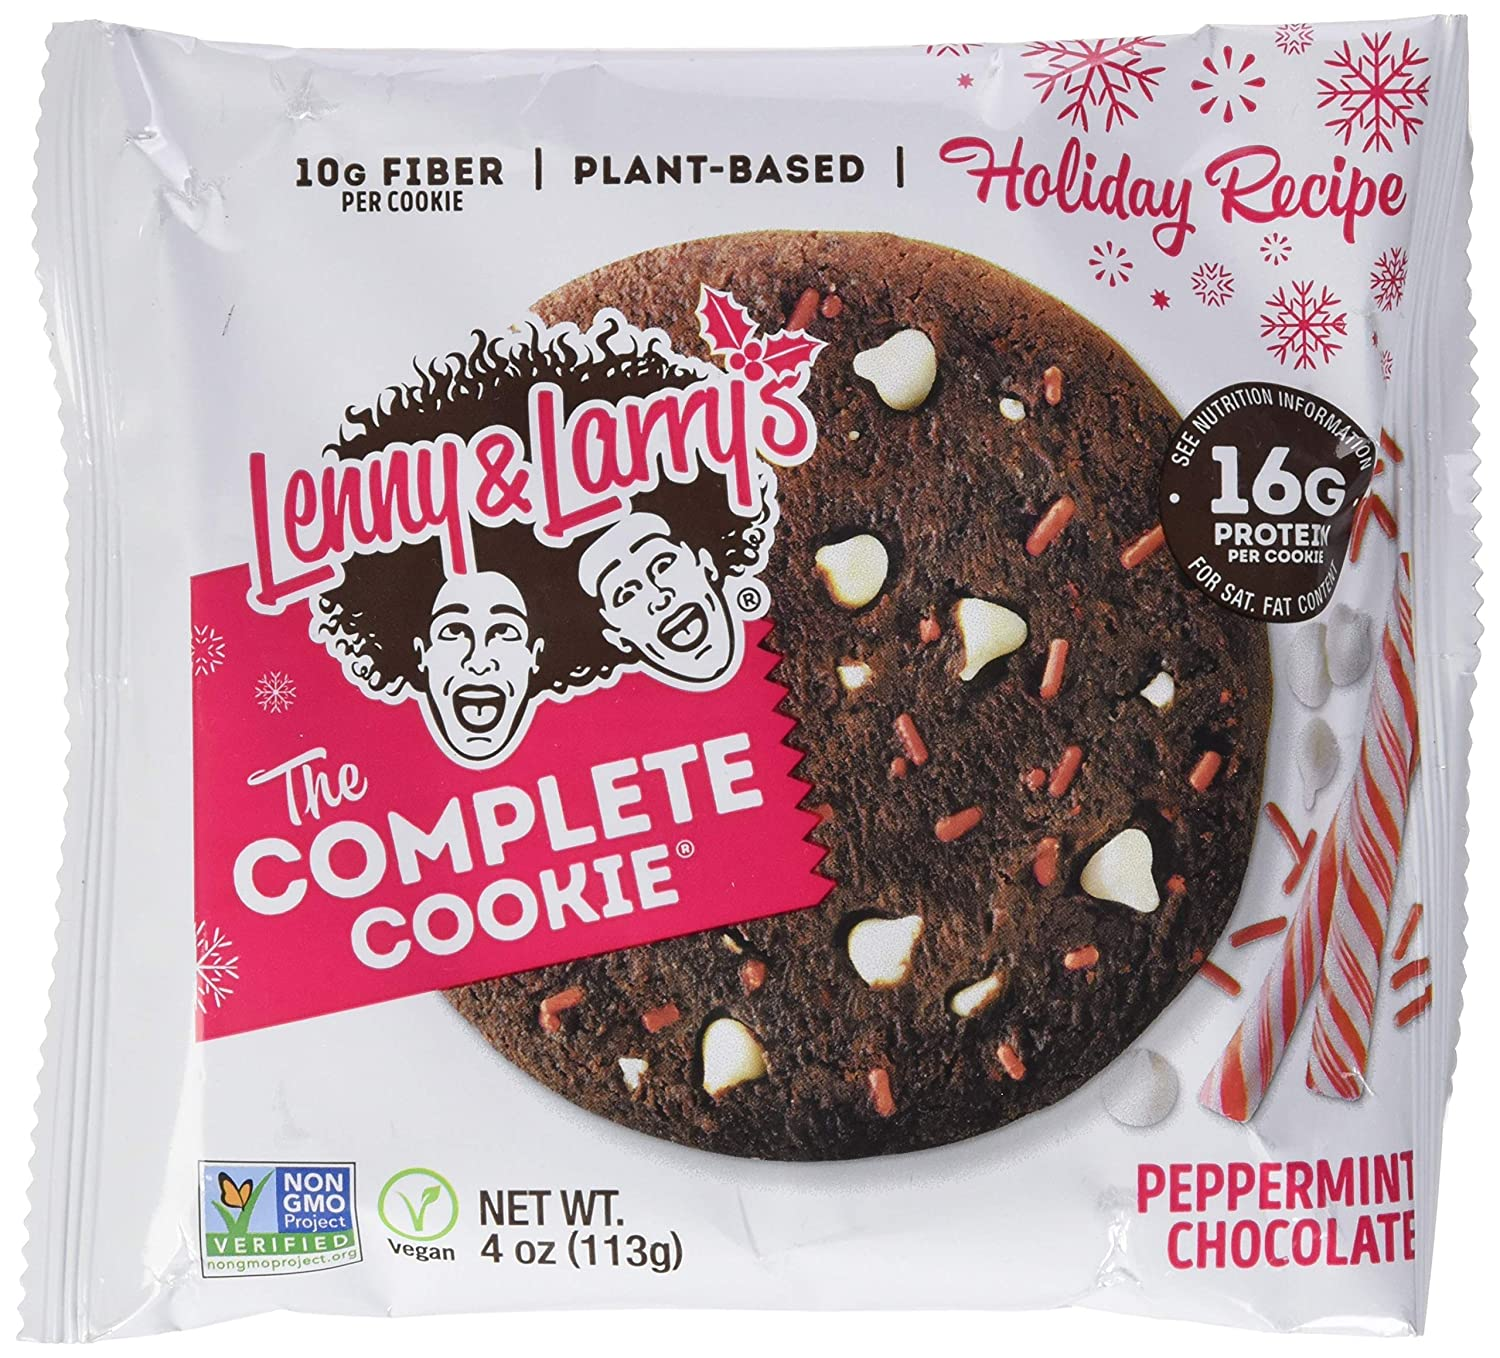 LENNY & LARRYS Peppermint Chocolate Complete Cookie 12 Count, 4 OZ